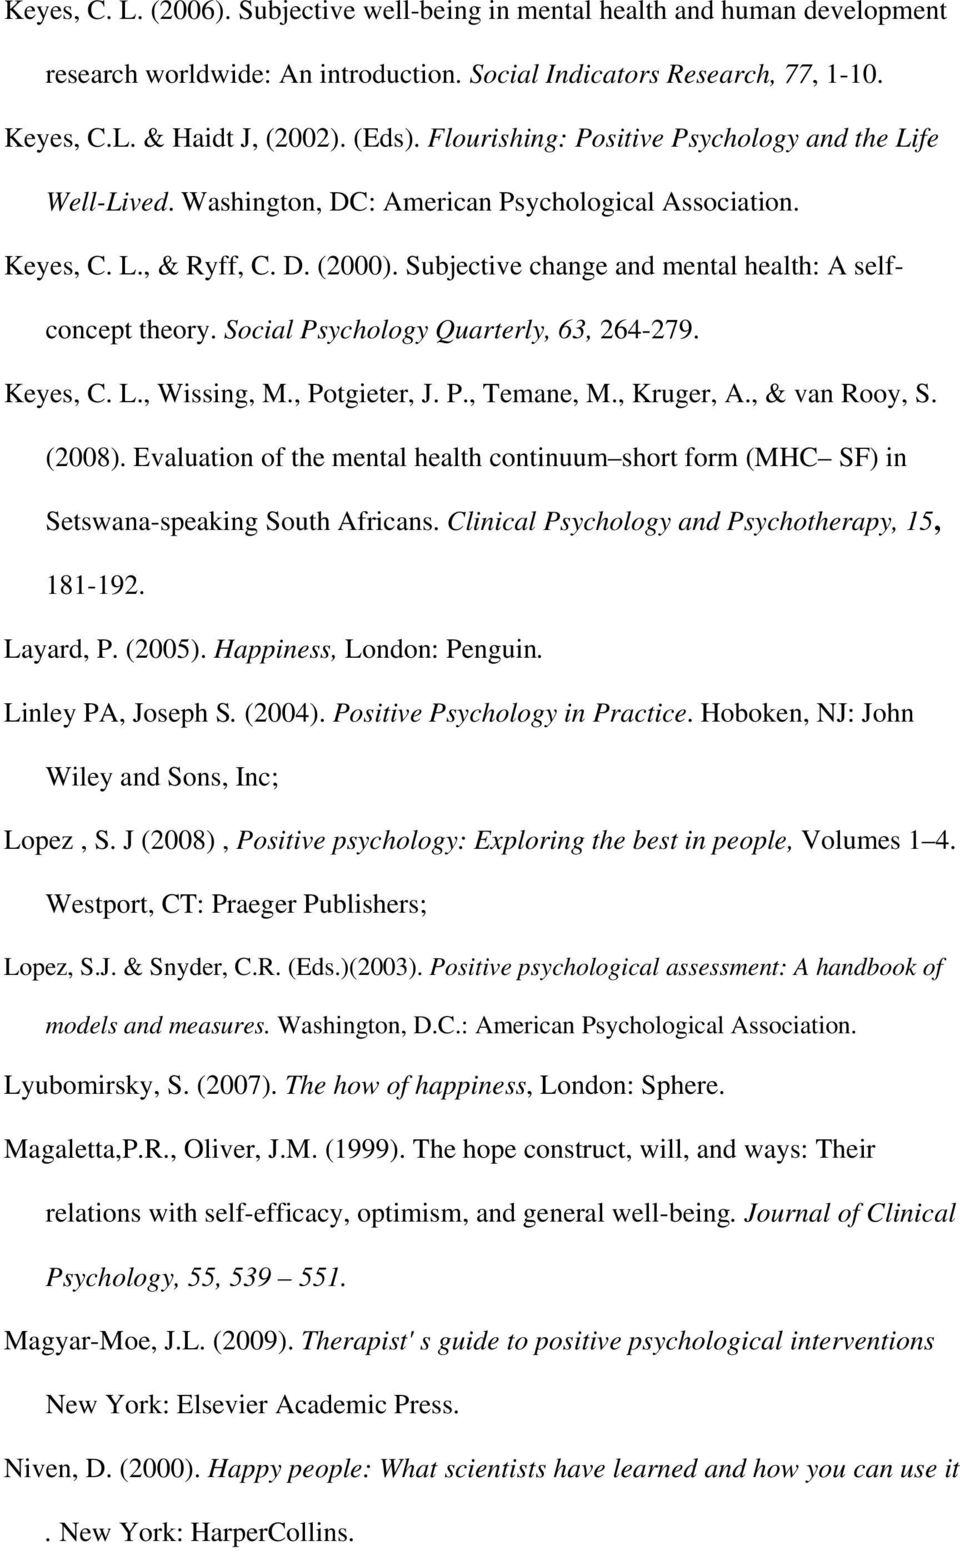 Subjective change and mental health: A selfconcept theory. Social Psychology Quarterly, 63, 264-279. Keyes, C. L., Wissing, M., Potgieter, J. P., Temane, M., Kruger, A., & van Rooy, S. (2008).